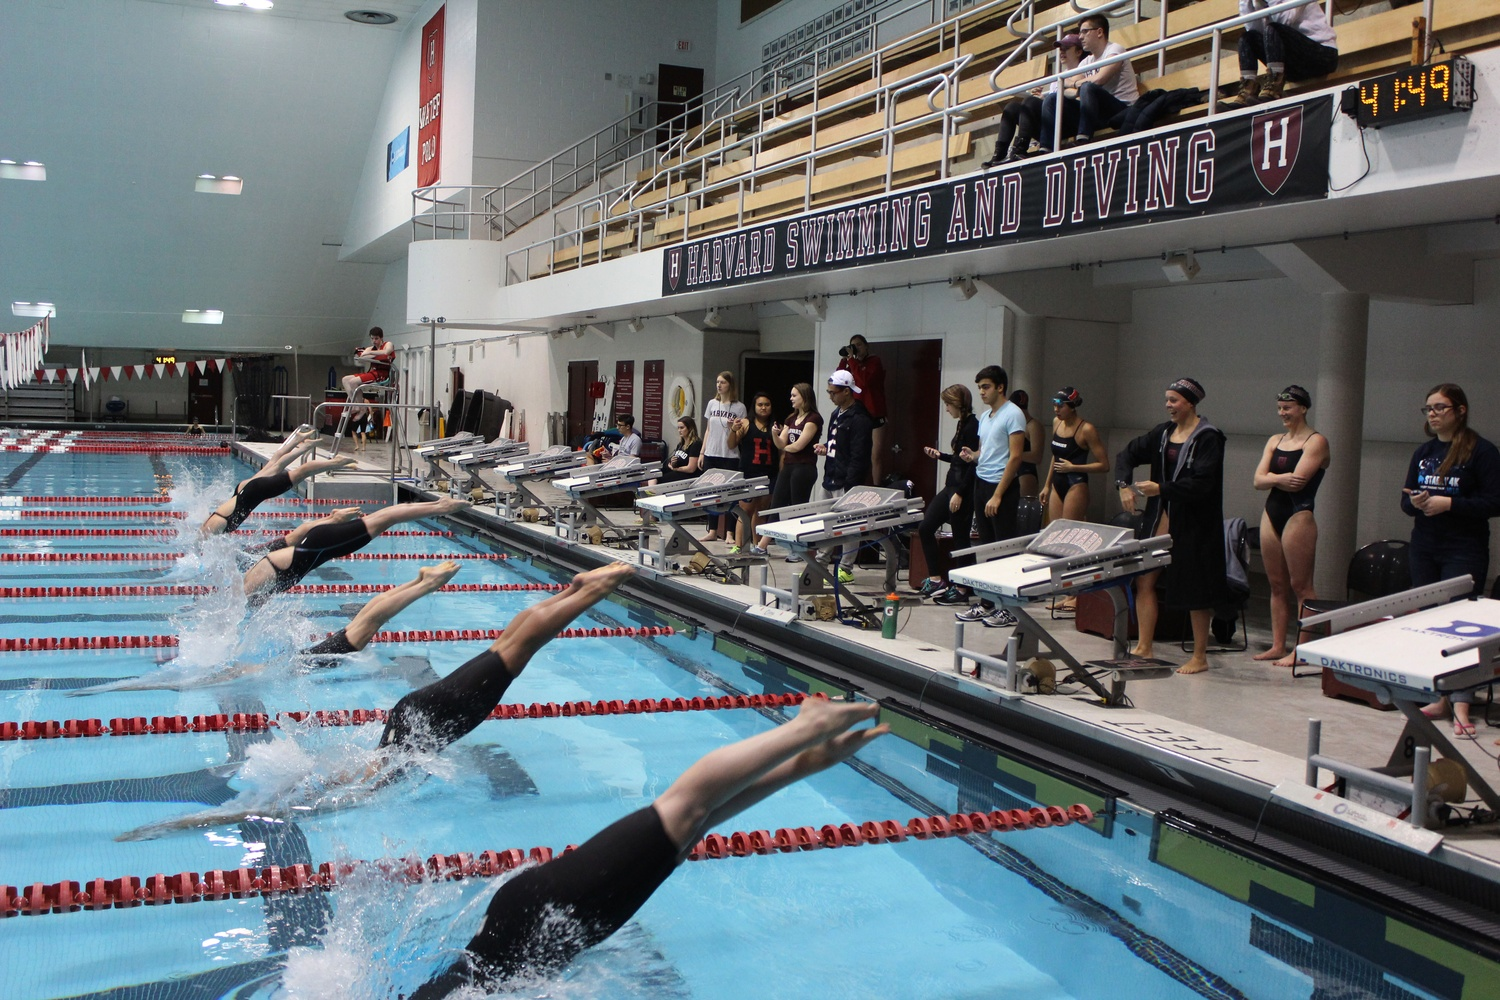 Sophomore Sonia Wang battled back from an injury to win the 400 individual medley at Ivy League Championships and led Harvard women's swimming, pictured here in earlier action against Northeastern, to a second-place finish.